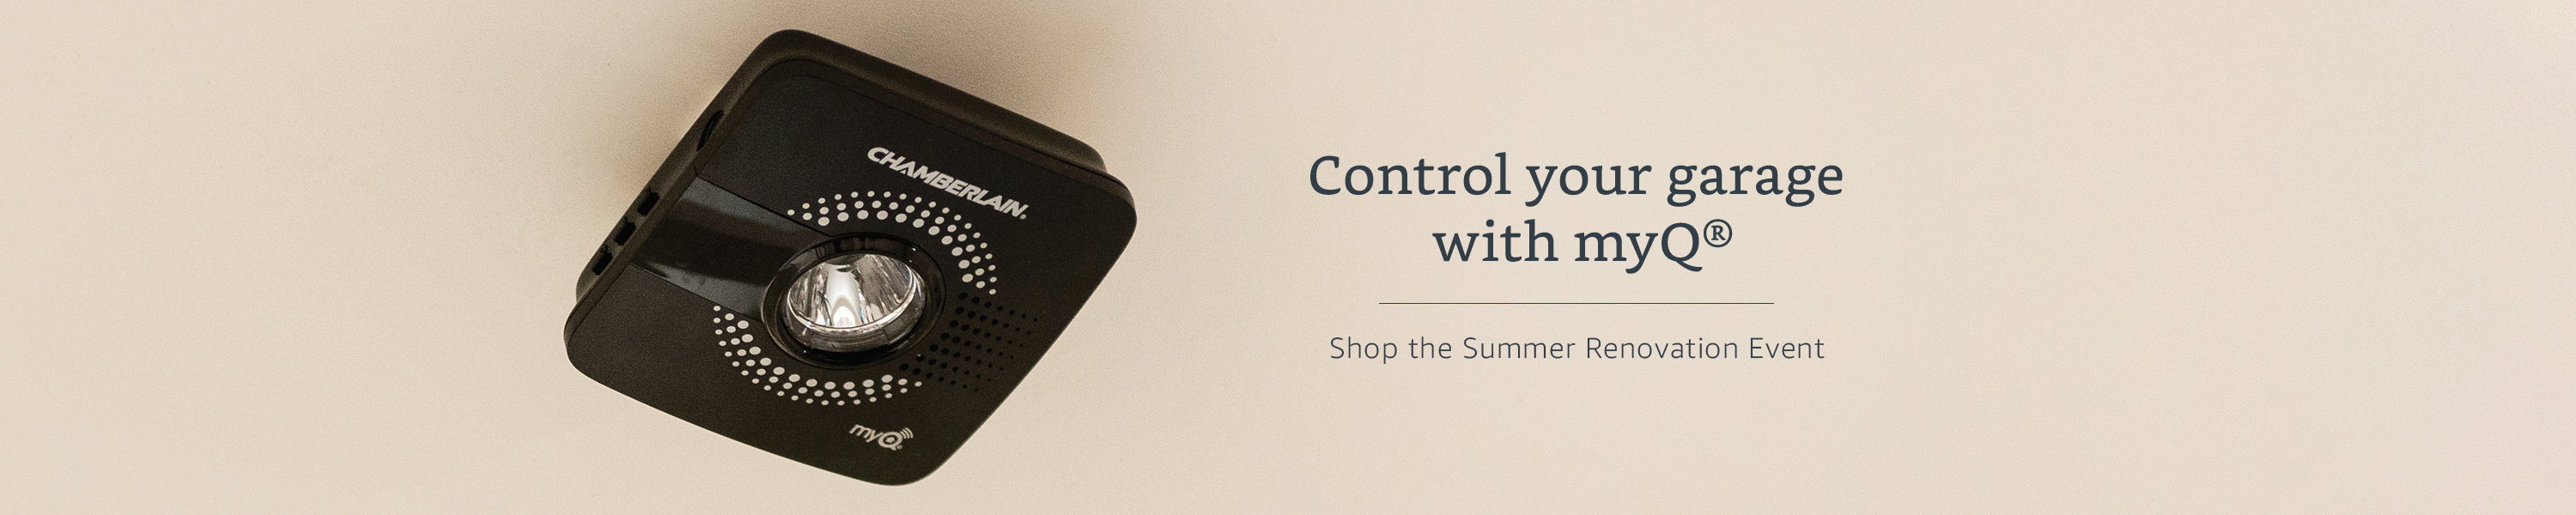 Control your garage with myQ. Shop the Summer Renovation Event.